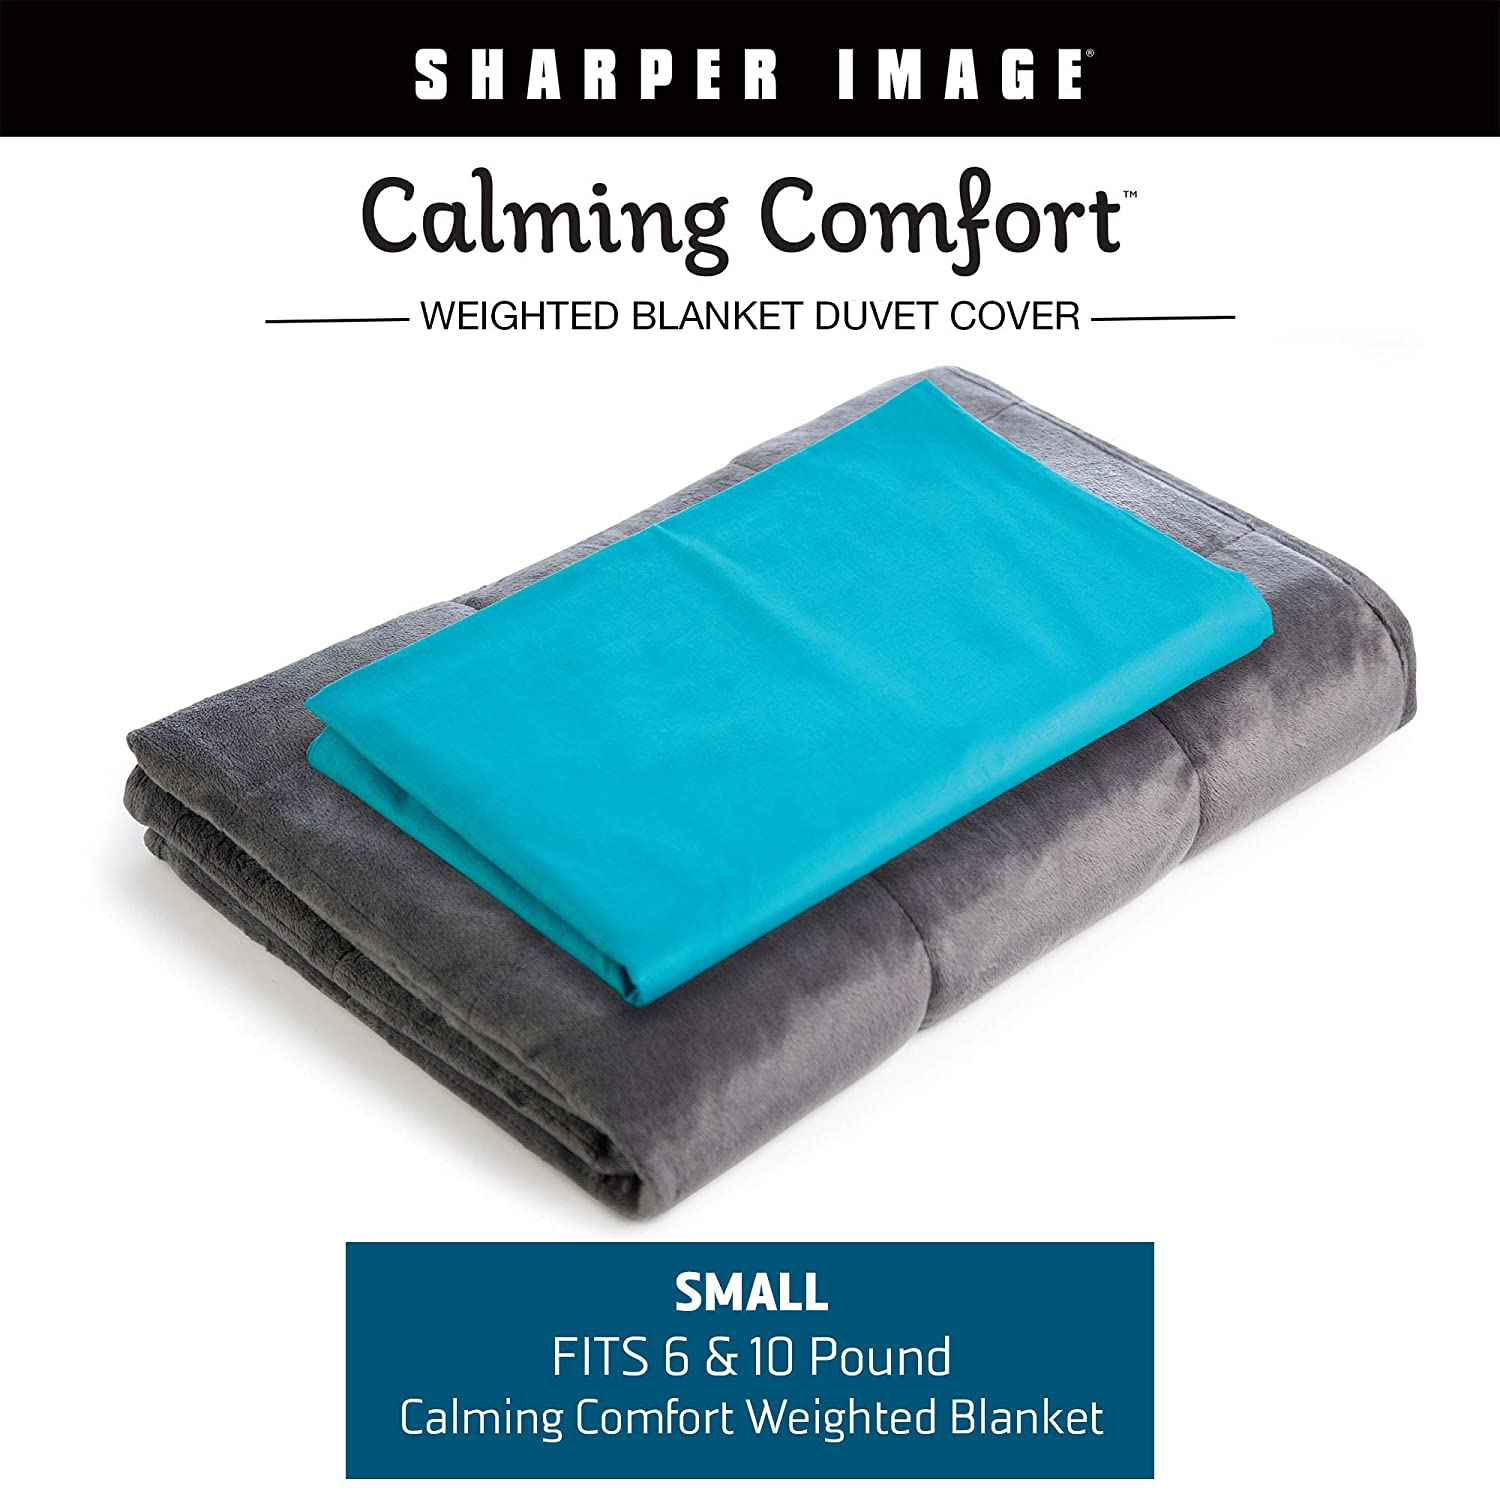 Amazoncom Calming Comfort By Sharper Image Weighted Blanket Duvet